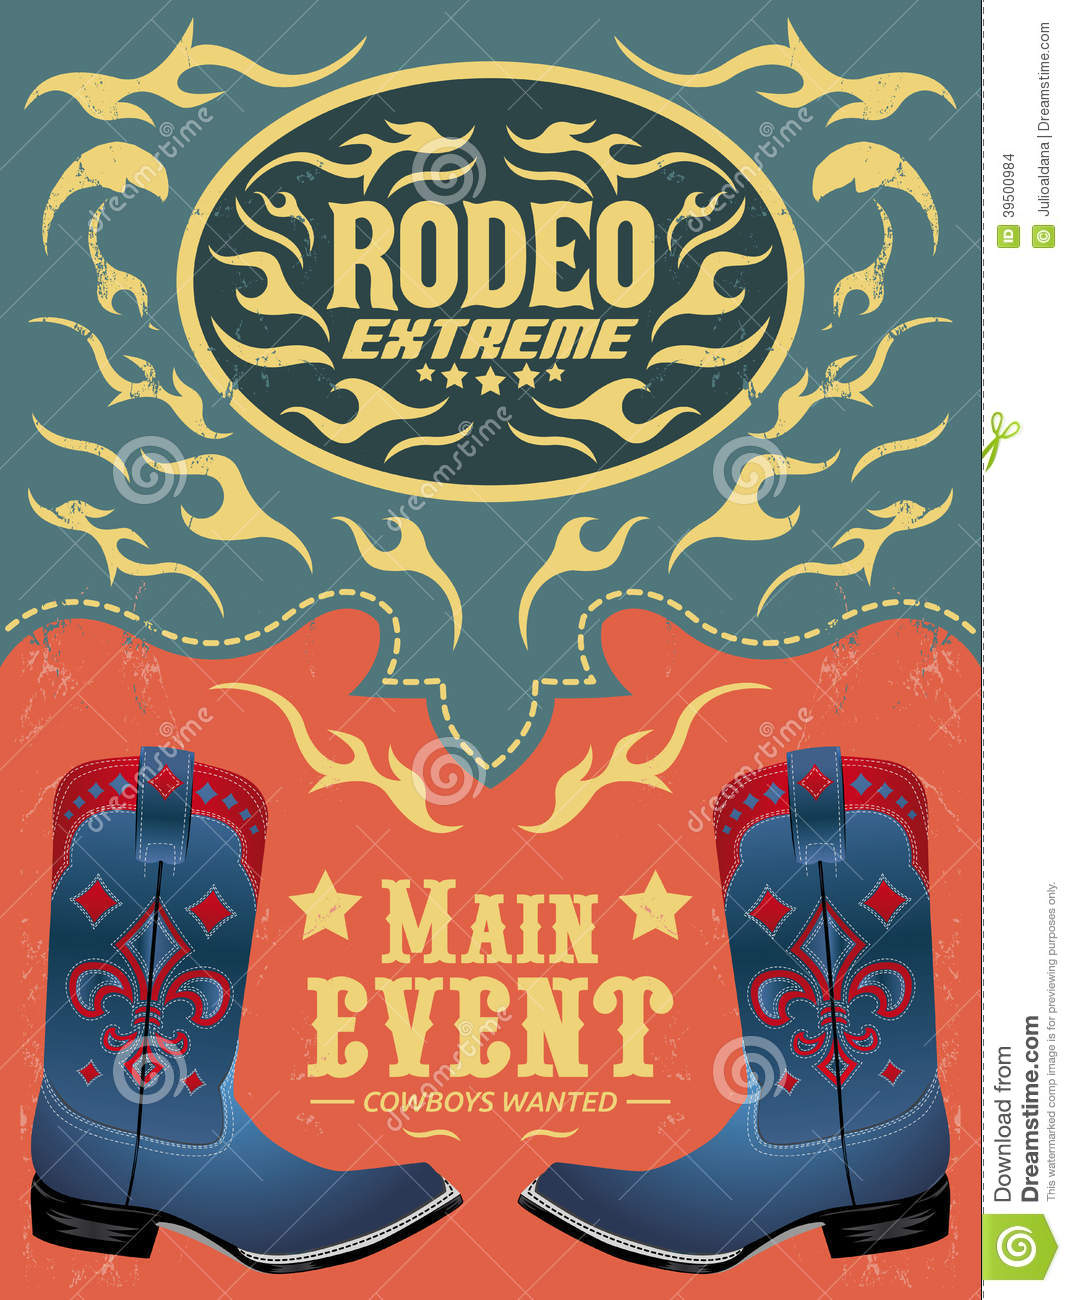 Rodeo Extreme - Cowboy event poster